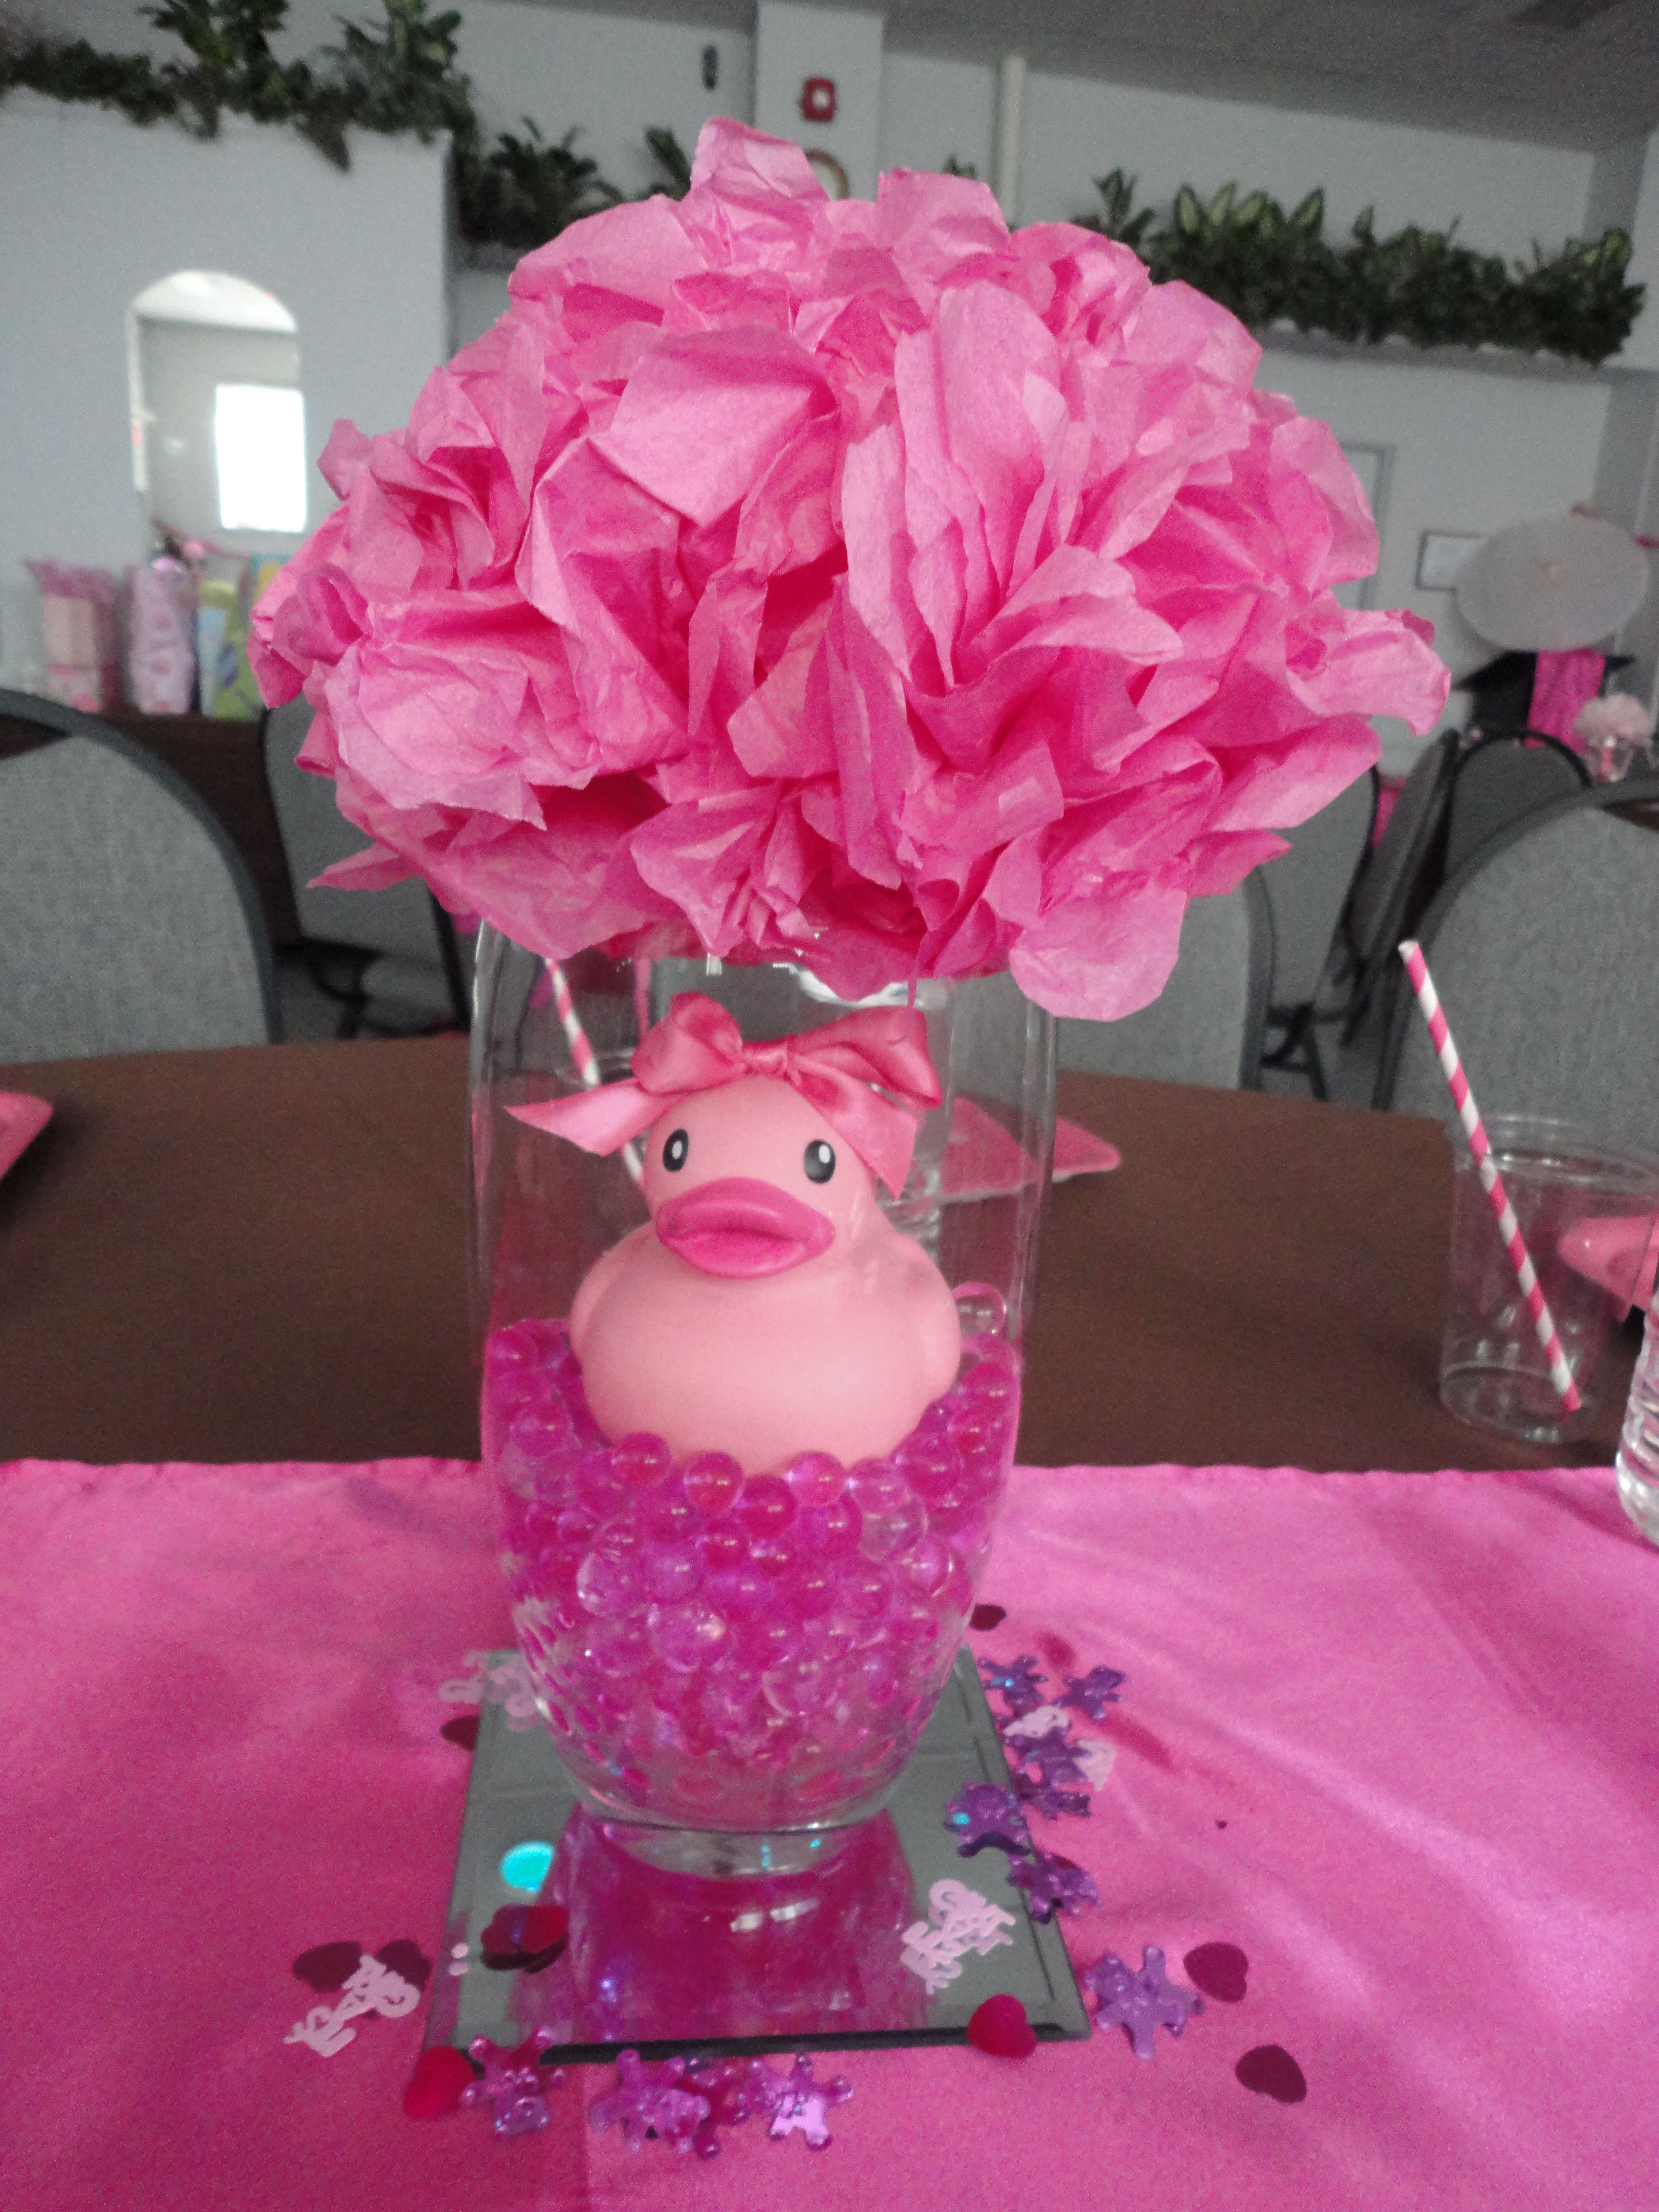 Amazing Find This Pin And More On Ashleys Baby Shower By Missviper. An Adorable Baby  Girl Shower Centerpiece